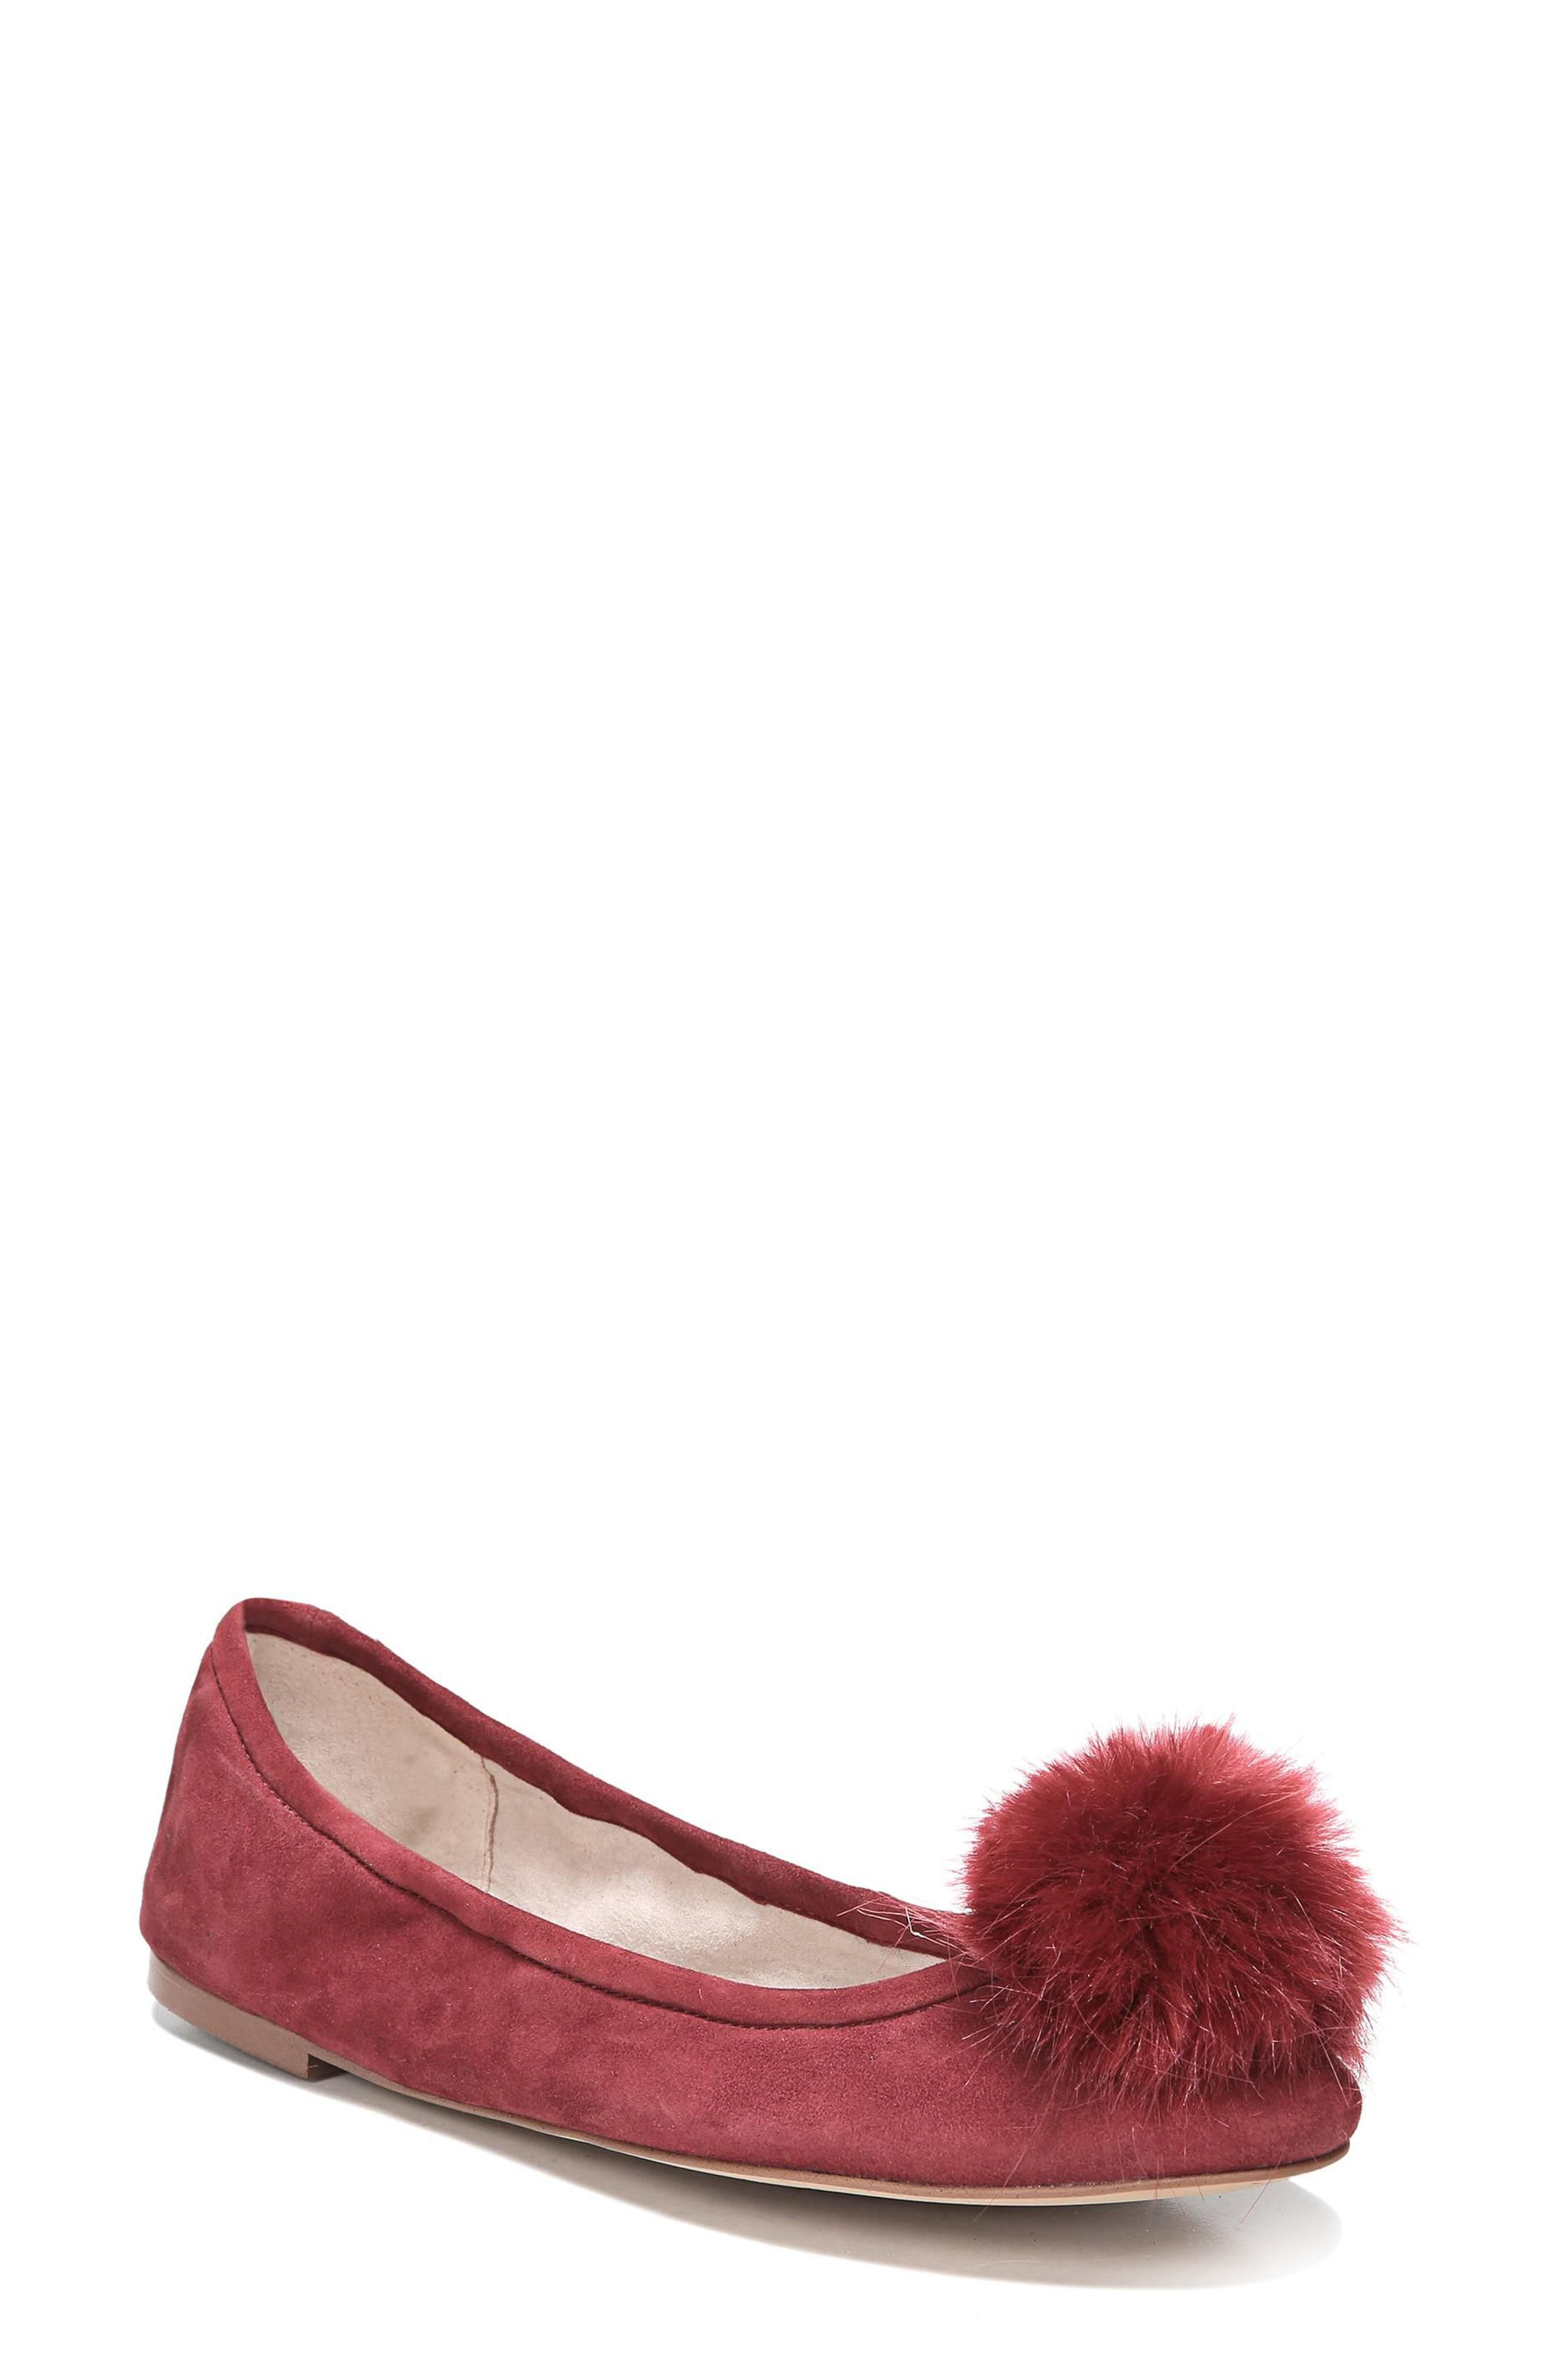 Farina Flat with Faux Fur Pompom,                         Main,                         color, Tango Red Leather